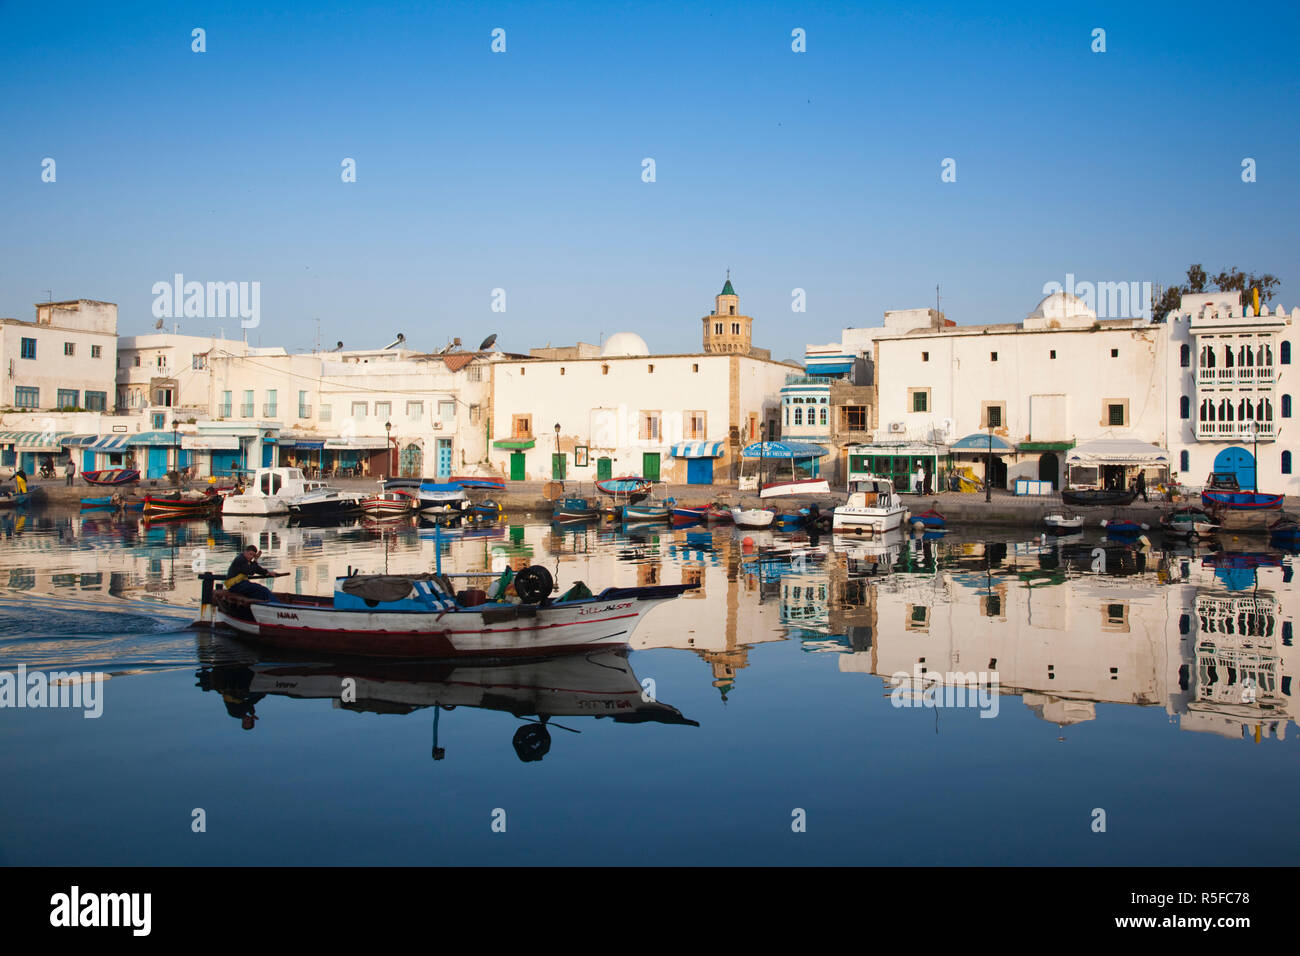 La Tunisie, le nord de la Tunisie, Bizerte, Vieux Port Photo Stock